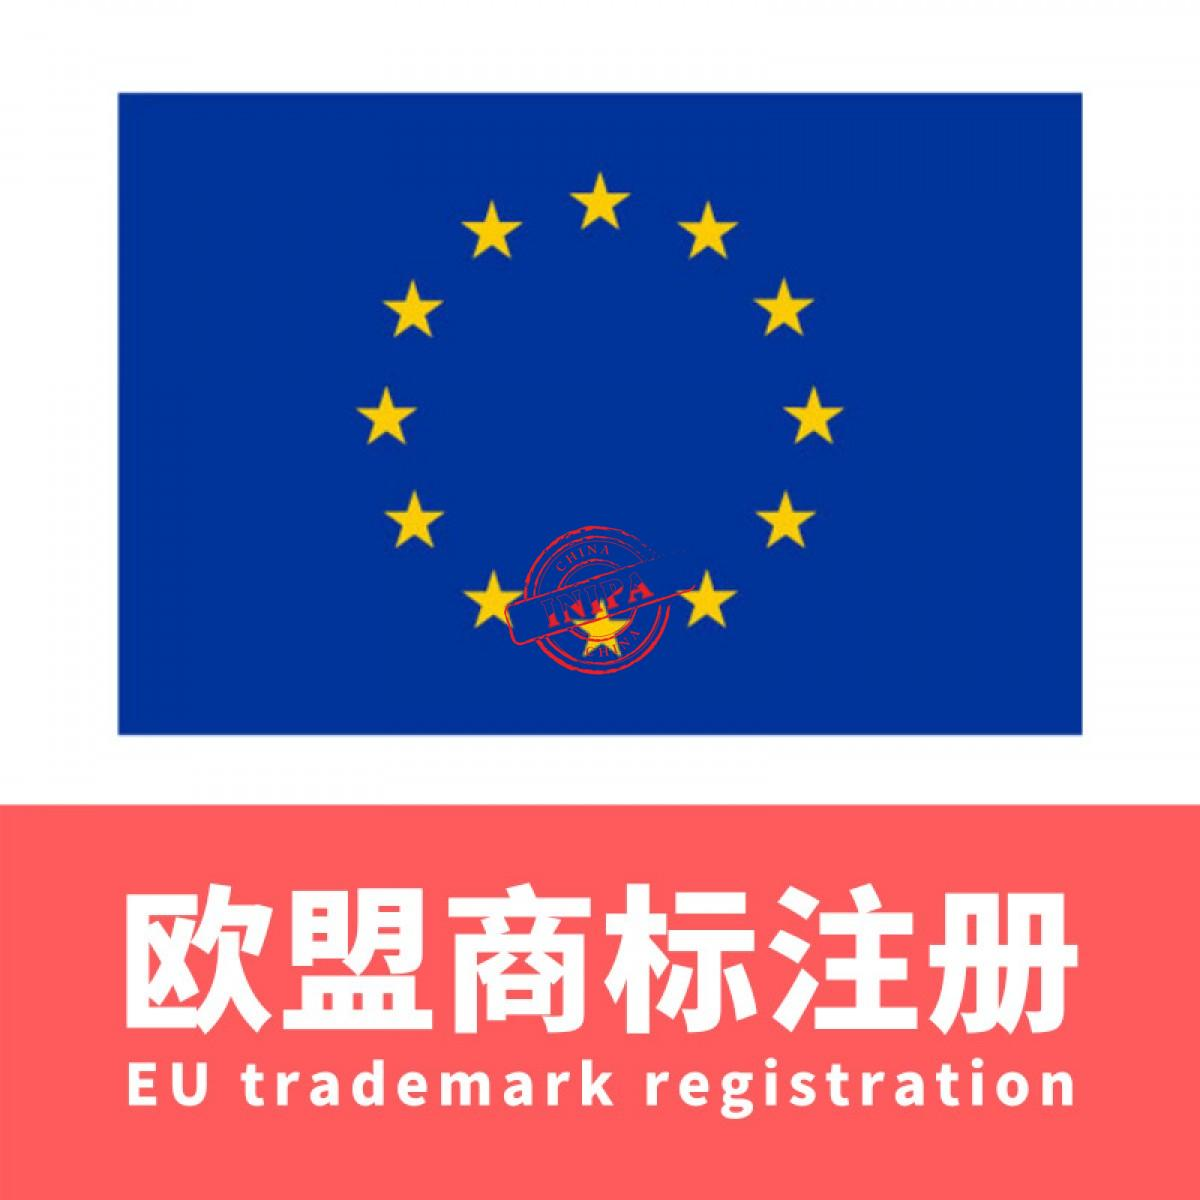 欧盟商标注册/EU trademark registration